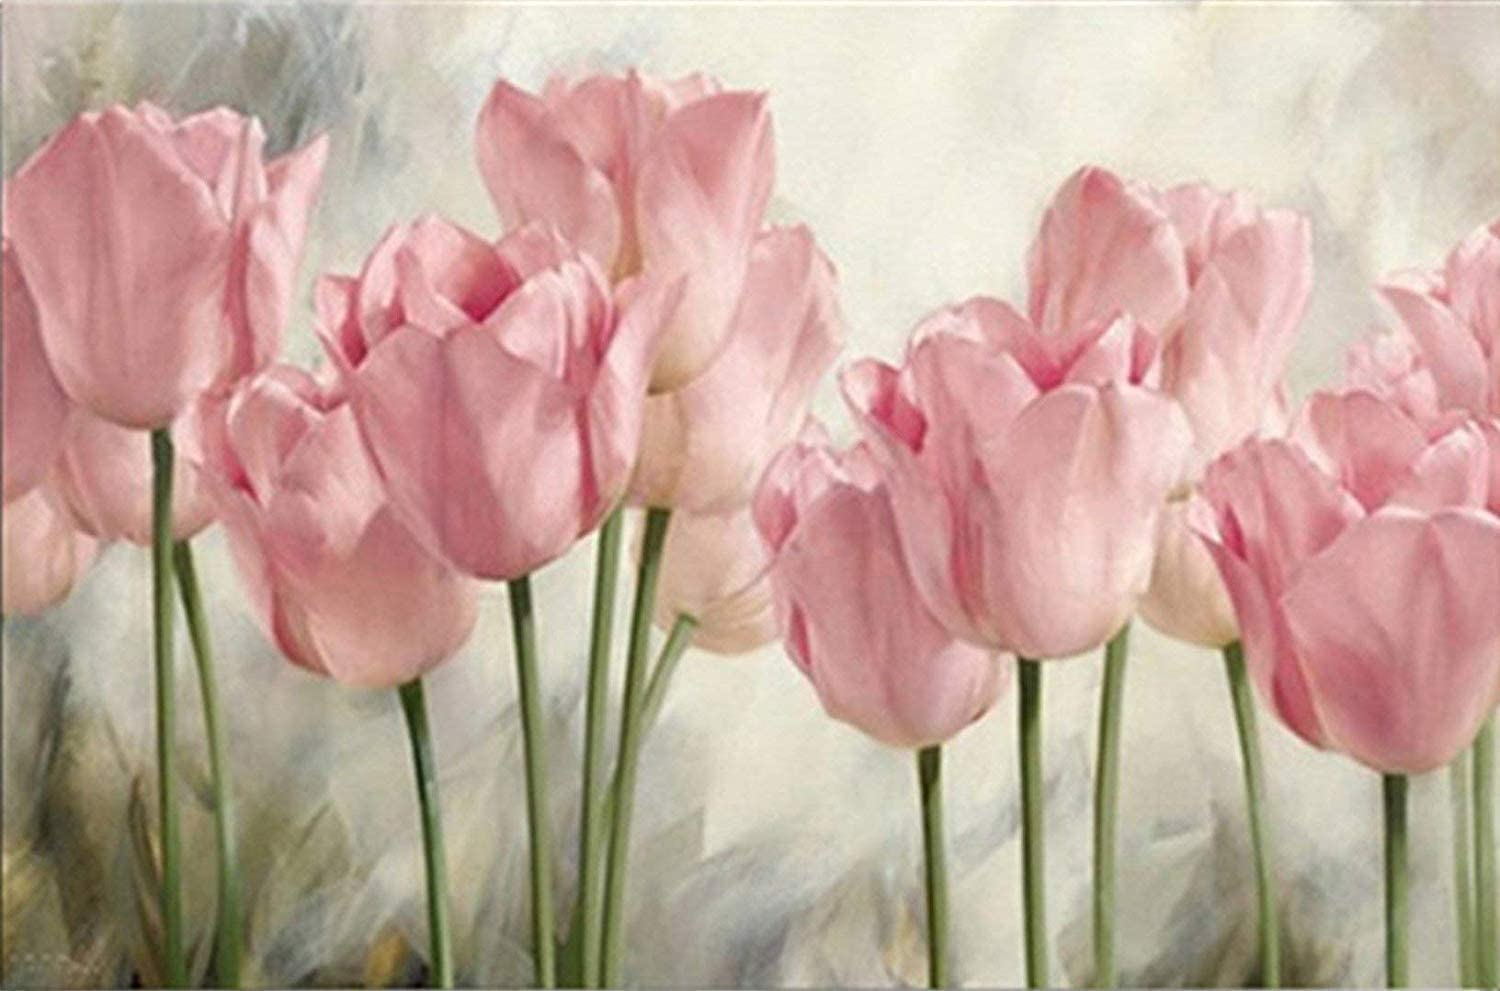 Flower Pink Tulips Diamond Painting Kits by Number, 5D Full Drill Round Rhinestone Embroidery Cross Stitch for Home Wall Décor 12X16 inch